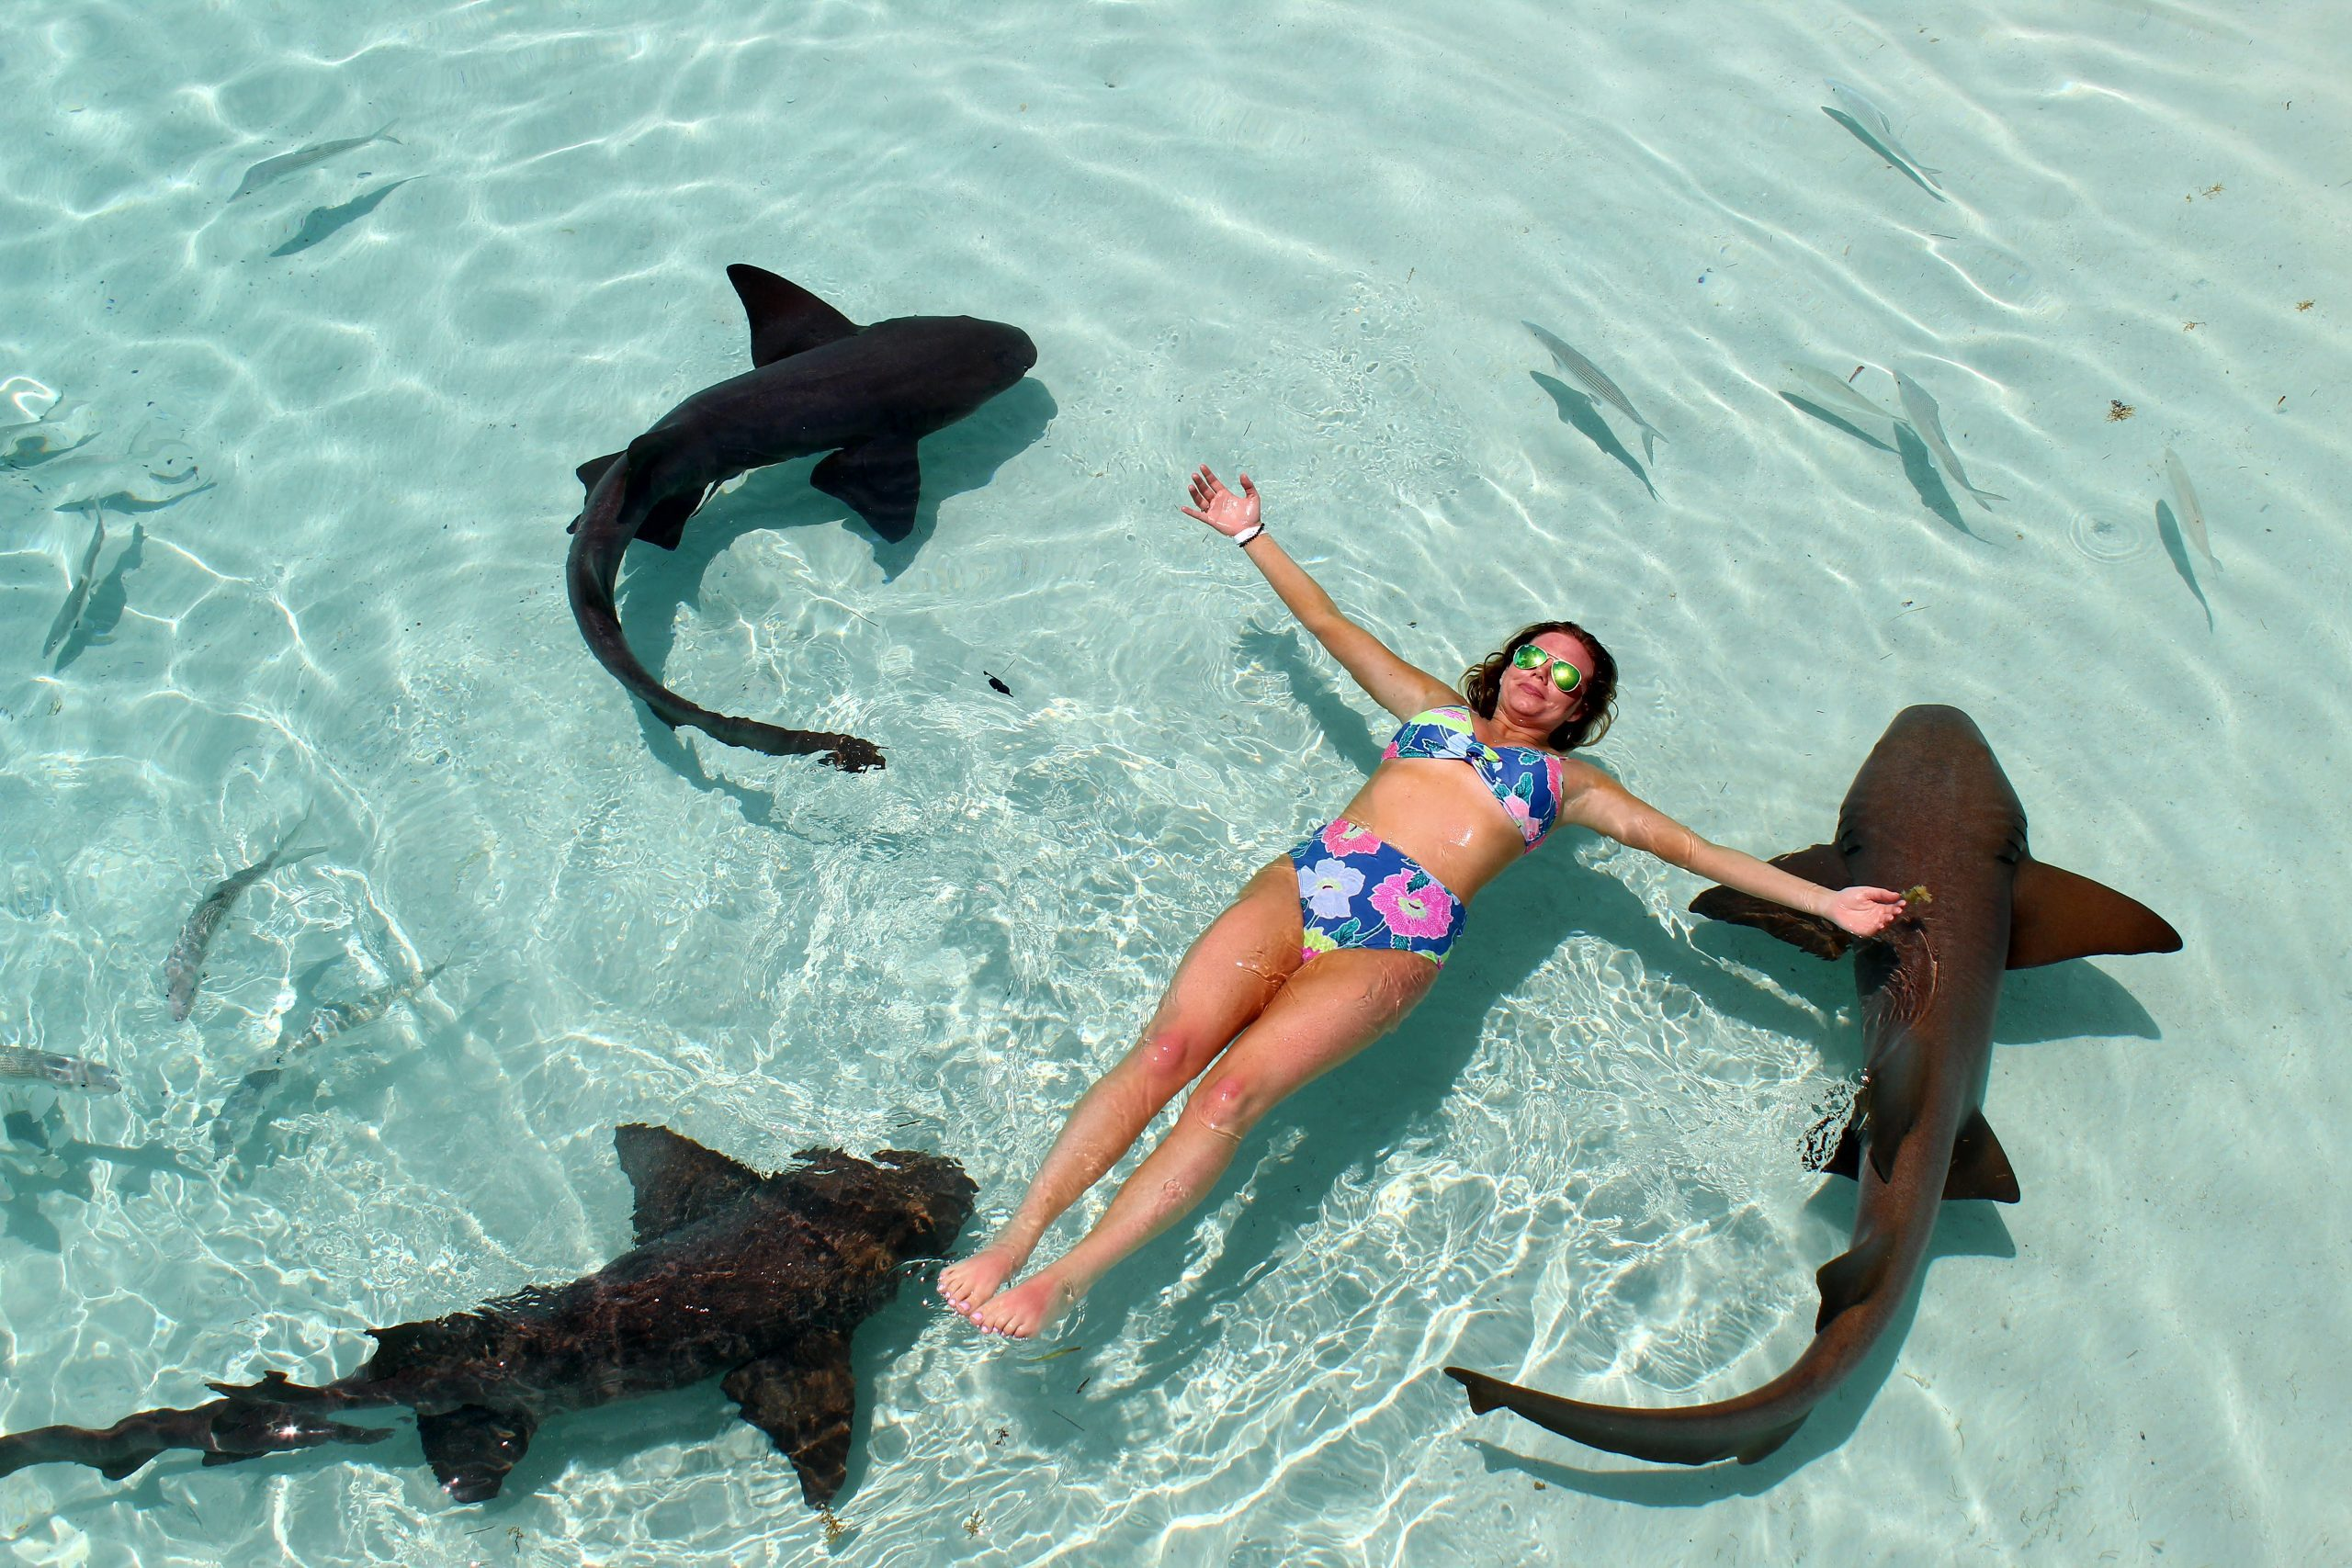 Swimming wth the sharks